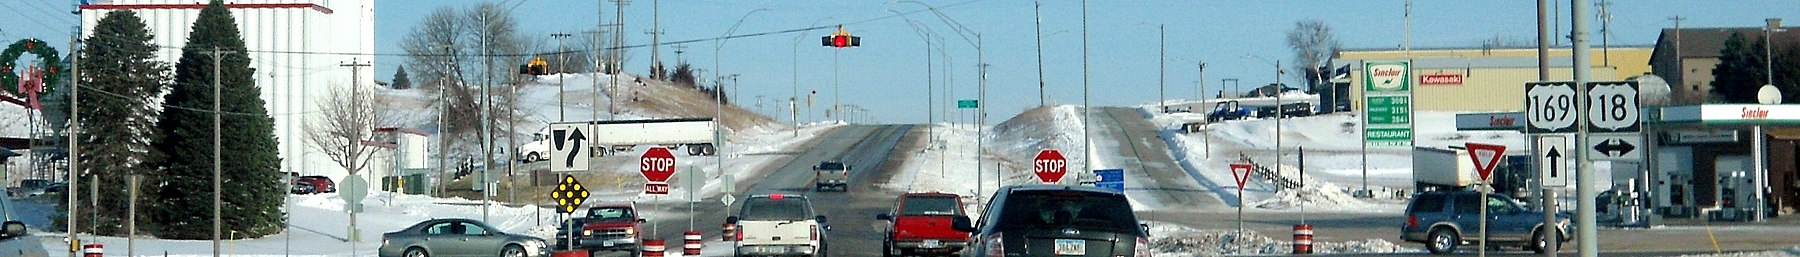 US 169 and US 18 intersection, Algona, IA (cropped).jpg